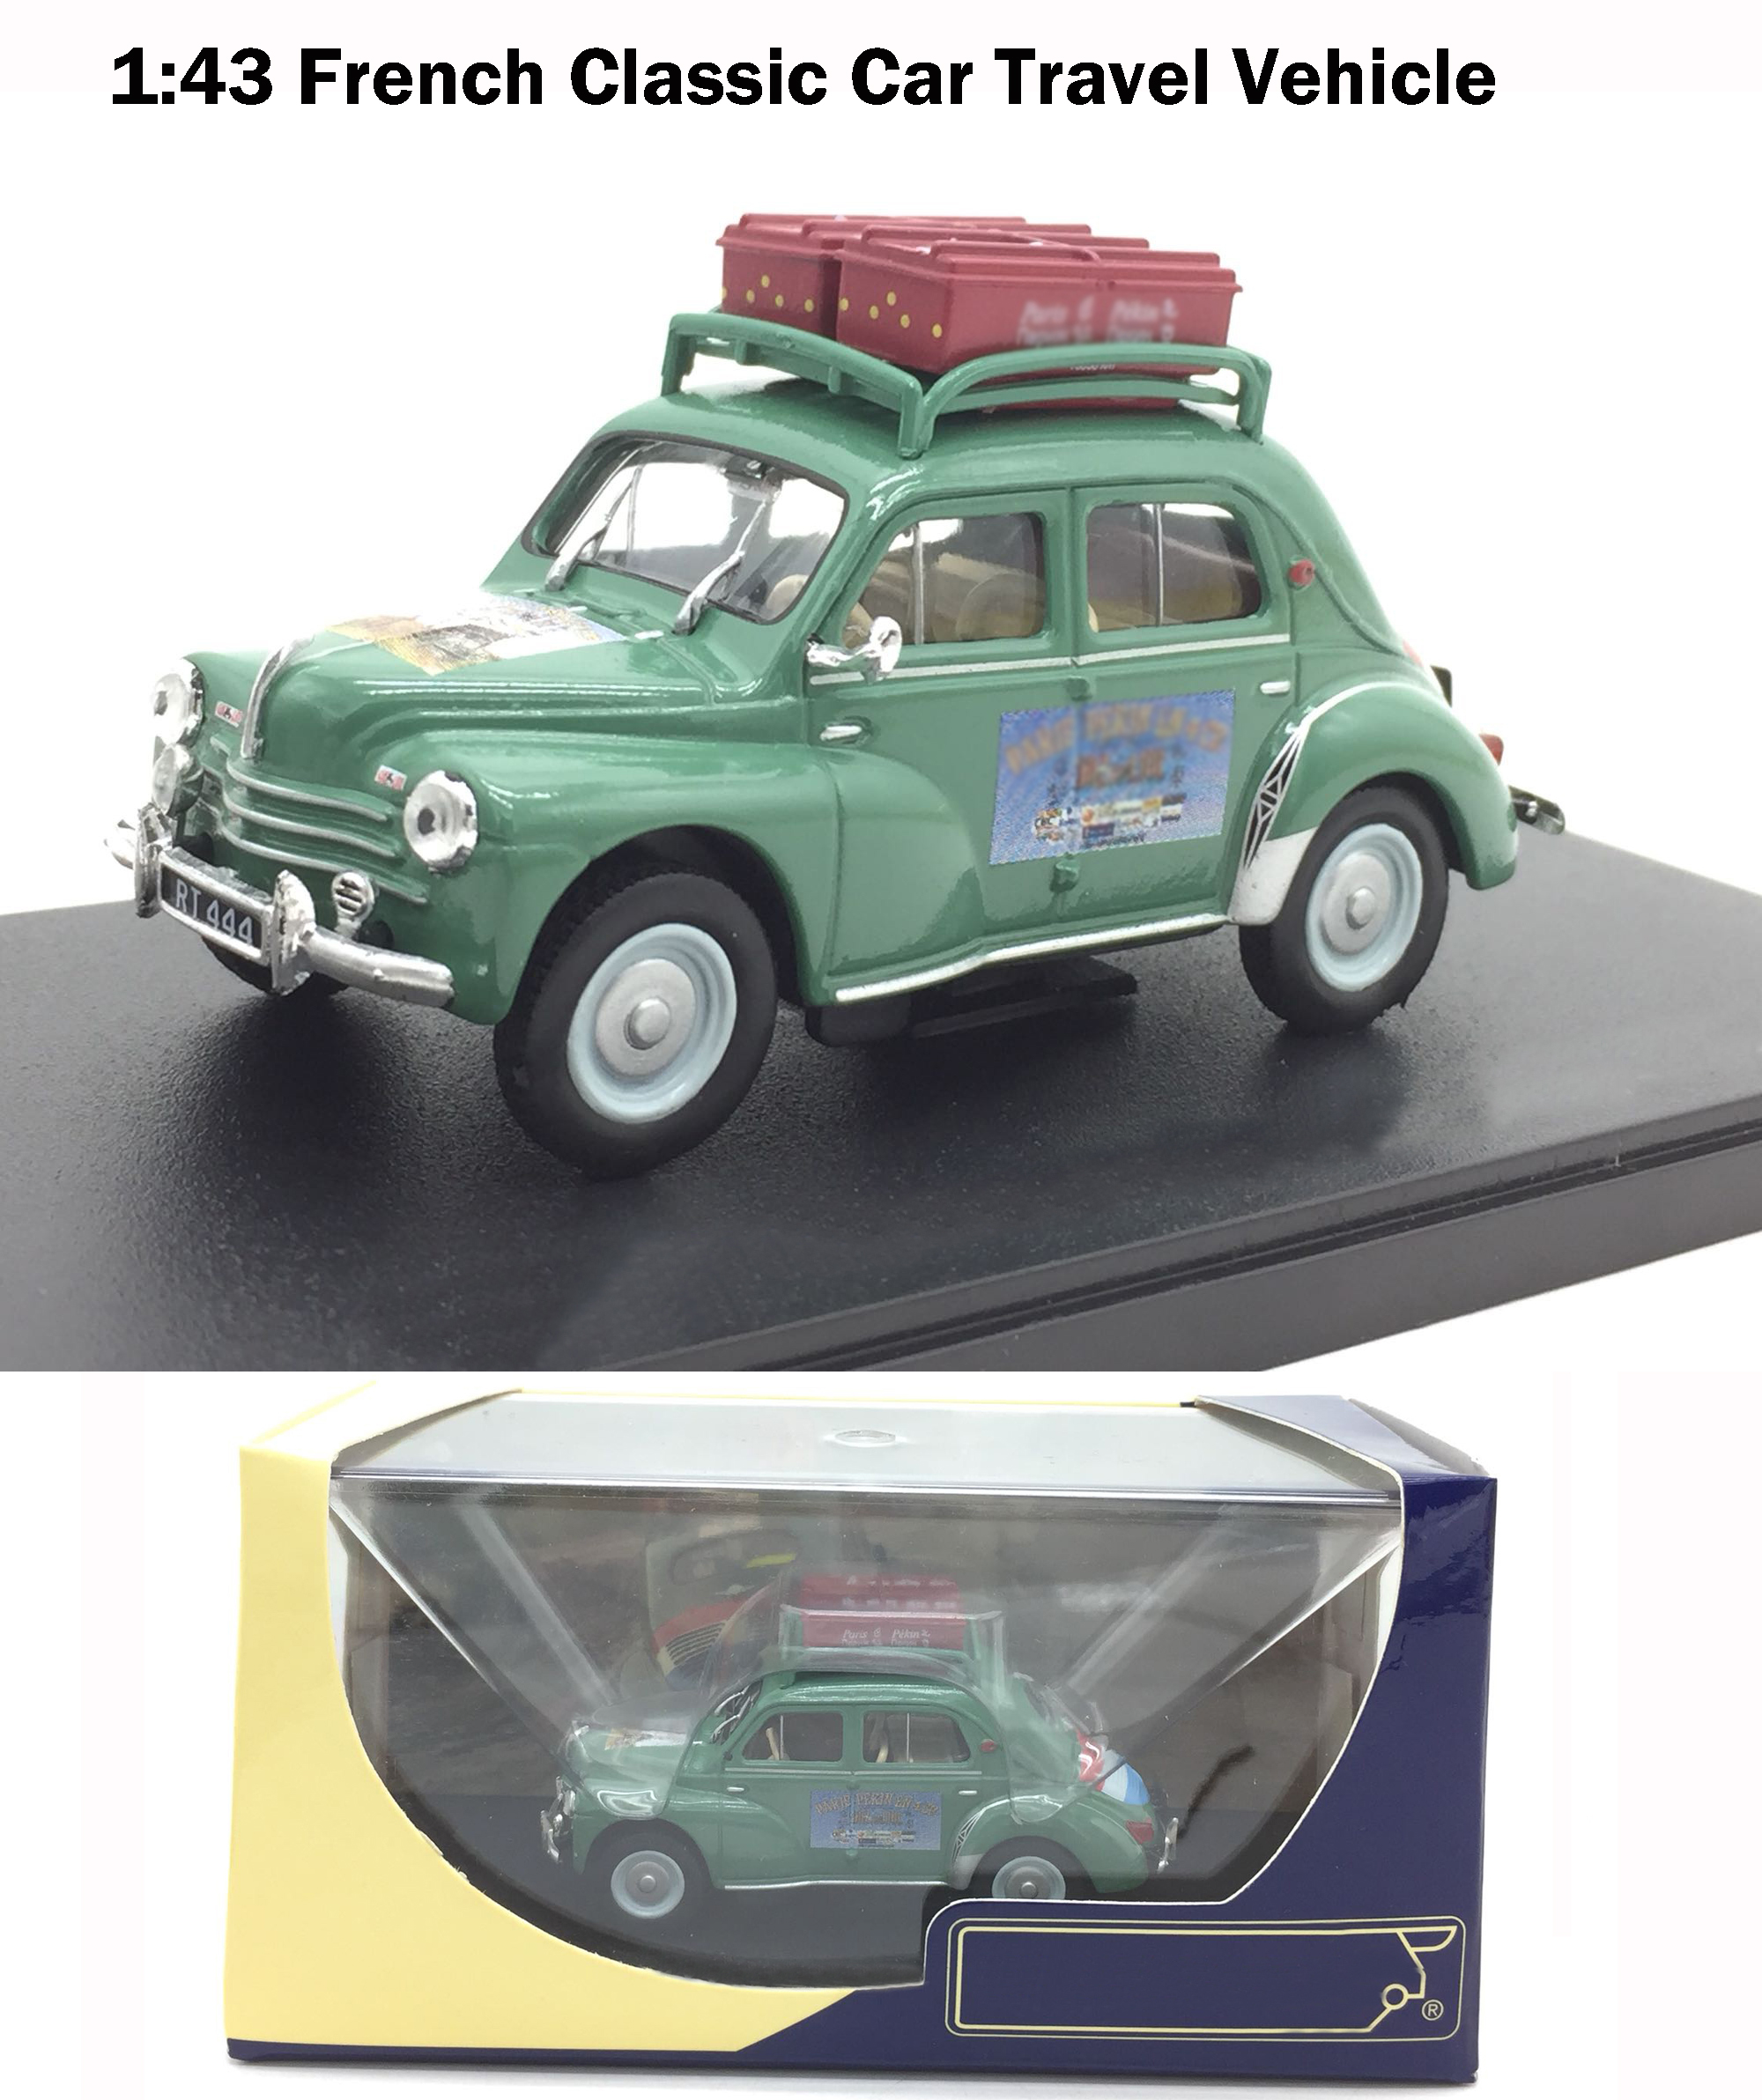 rare Special Offer <font><b>1:43</b></font> French 4-CV Classic Car Travel Vehicle Alloy Collection <font><b>Model</b></font> image